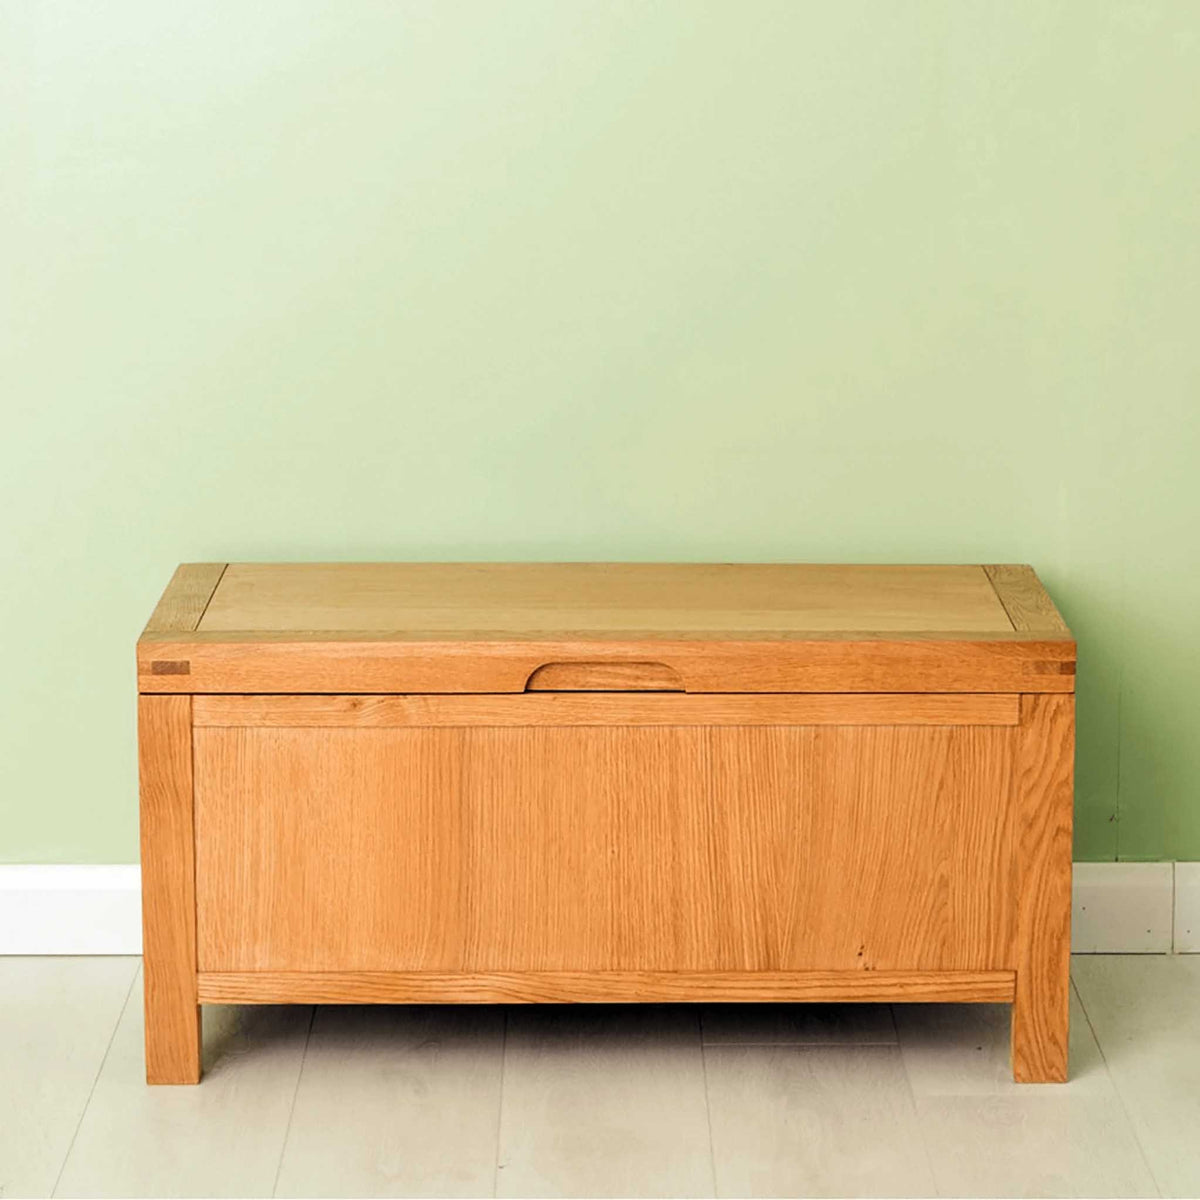 The Abbey Waxed Oak Ottoman Blanket Box from Roseland Furniture